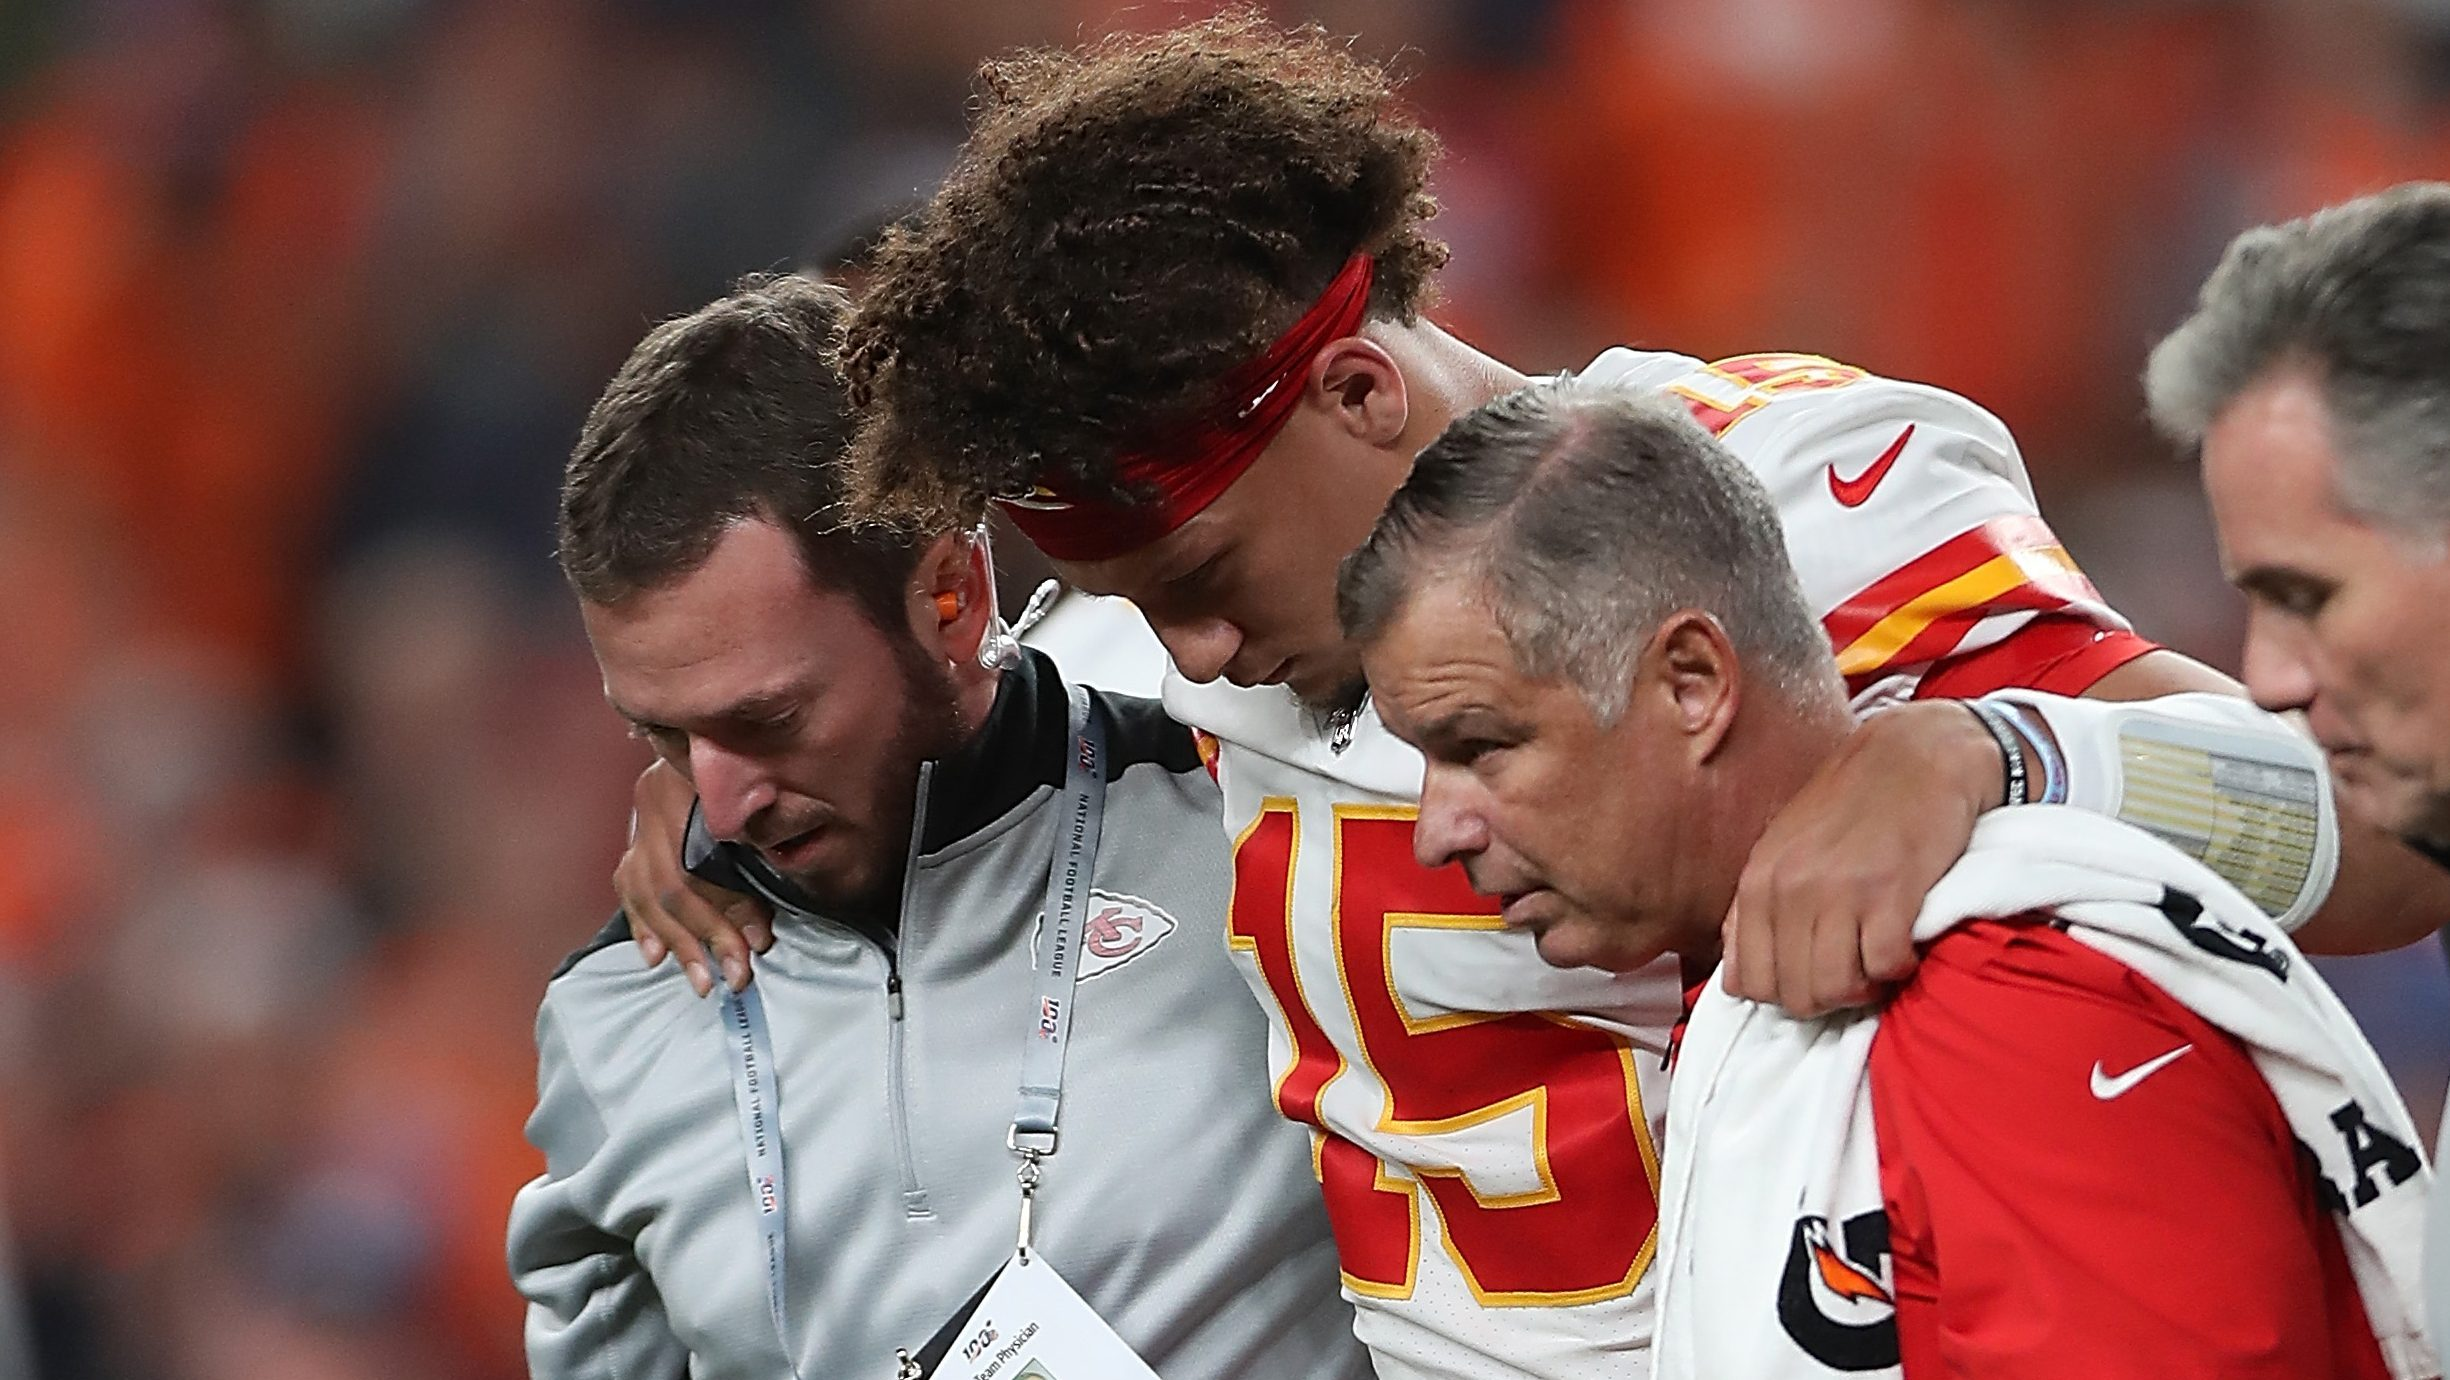 Chiefs Patrick Mahomes Injures Right Knee Against Broncos